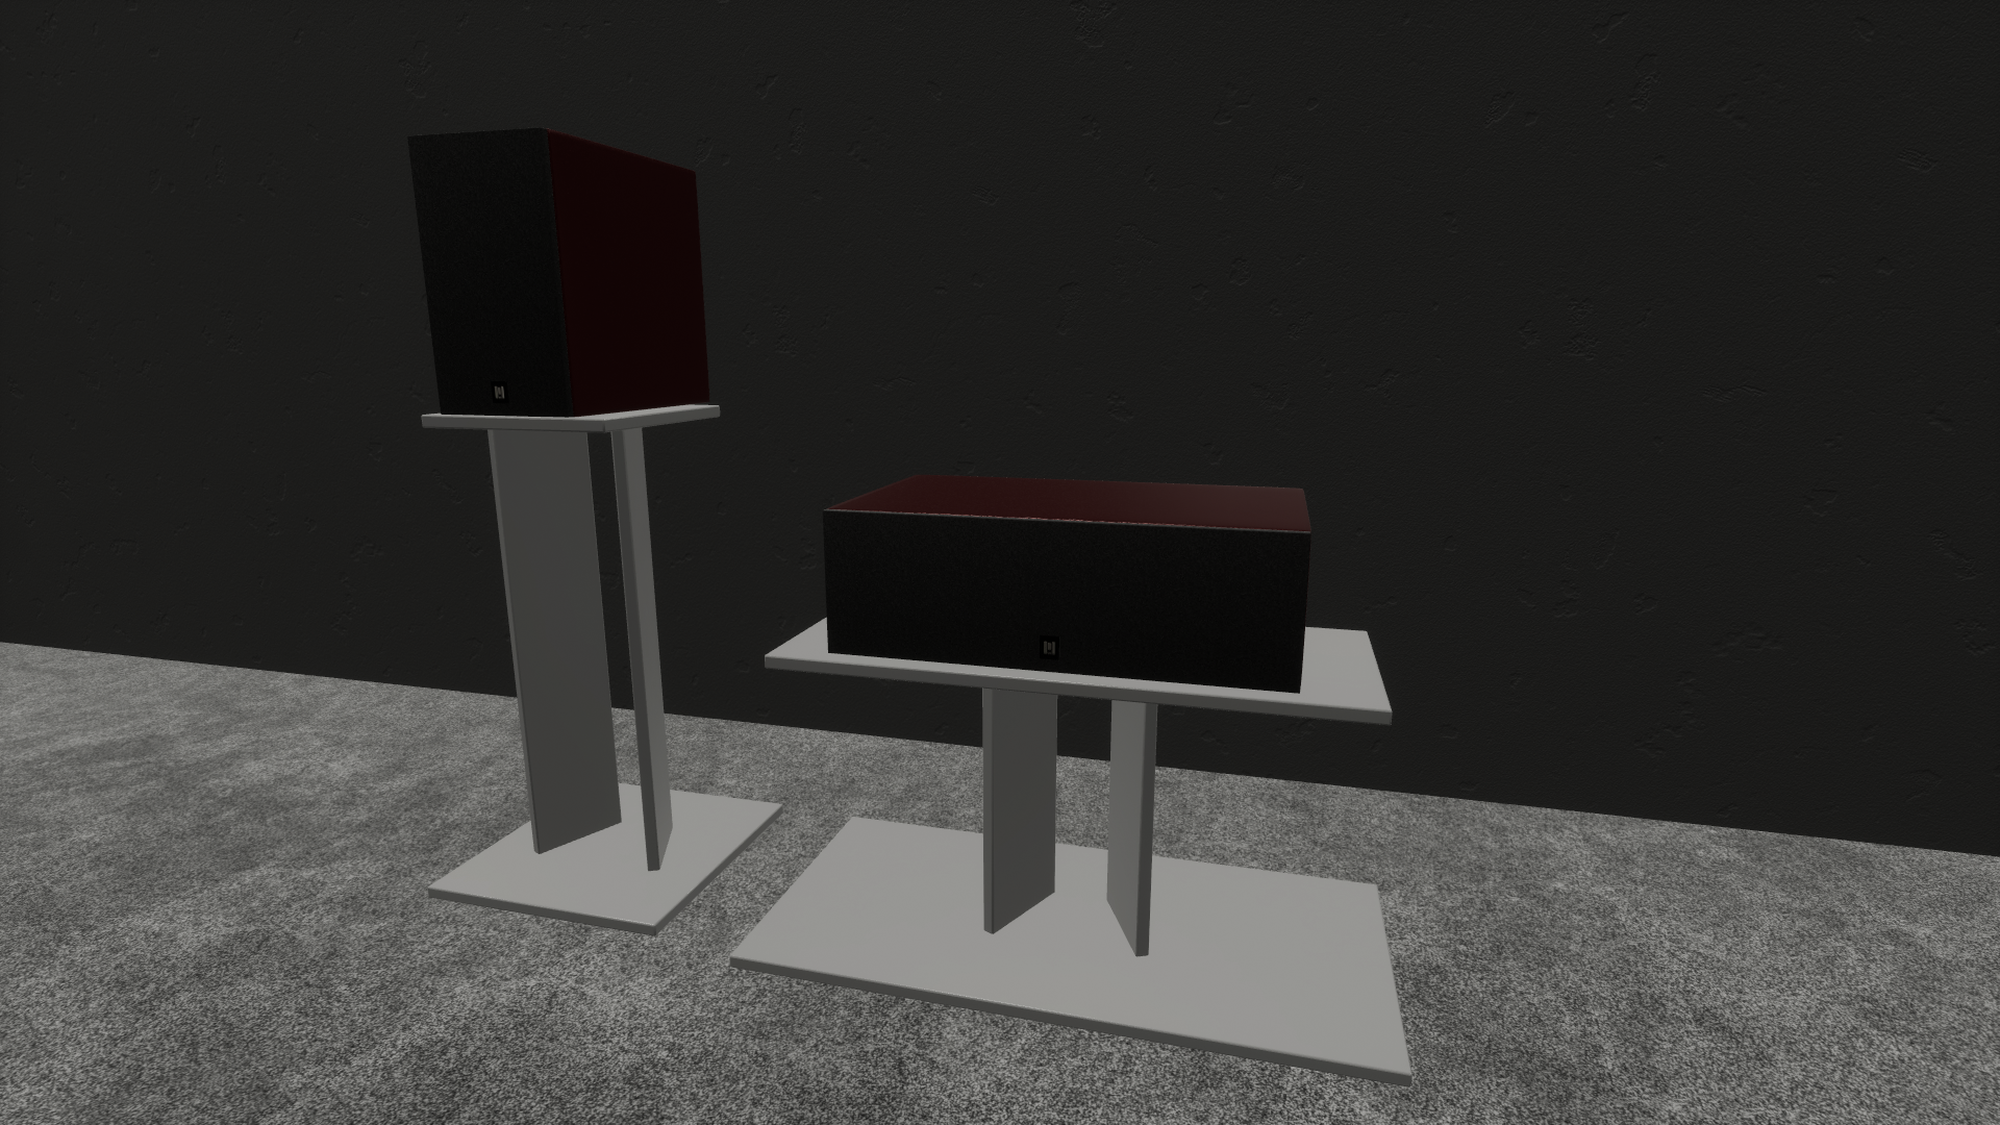 generic speaker and center channel stands